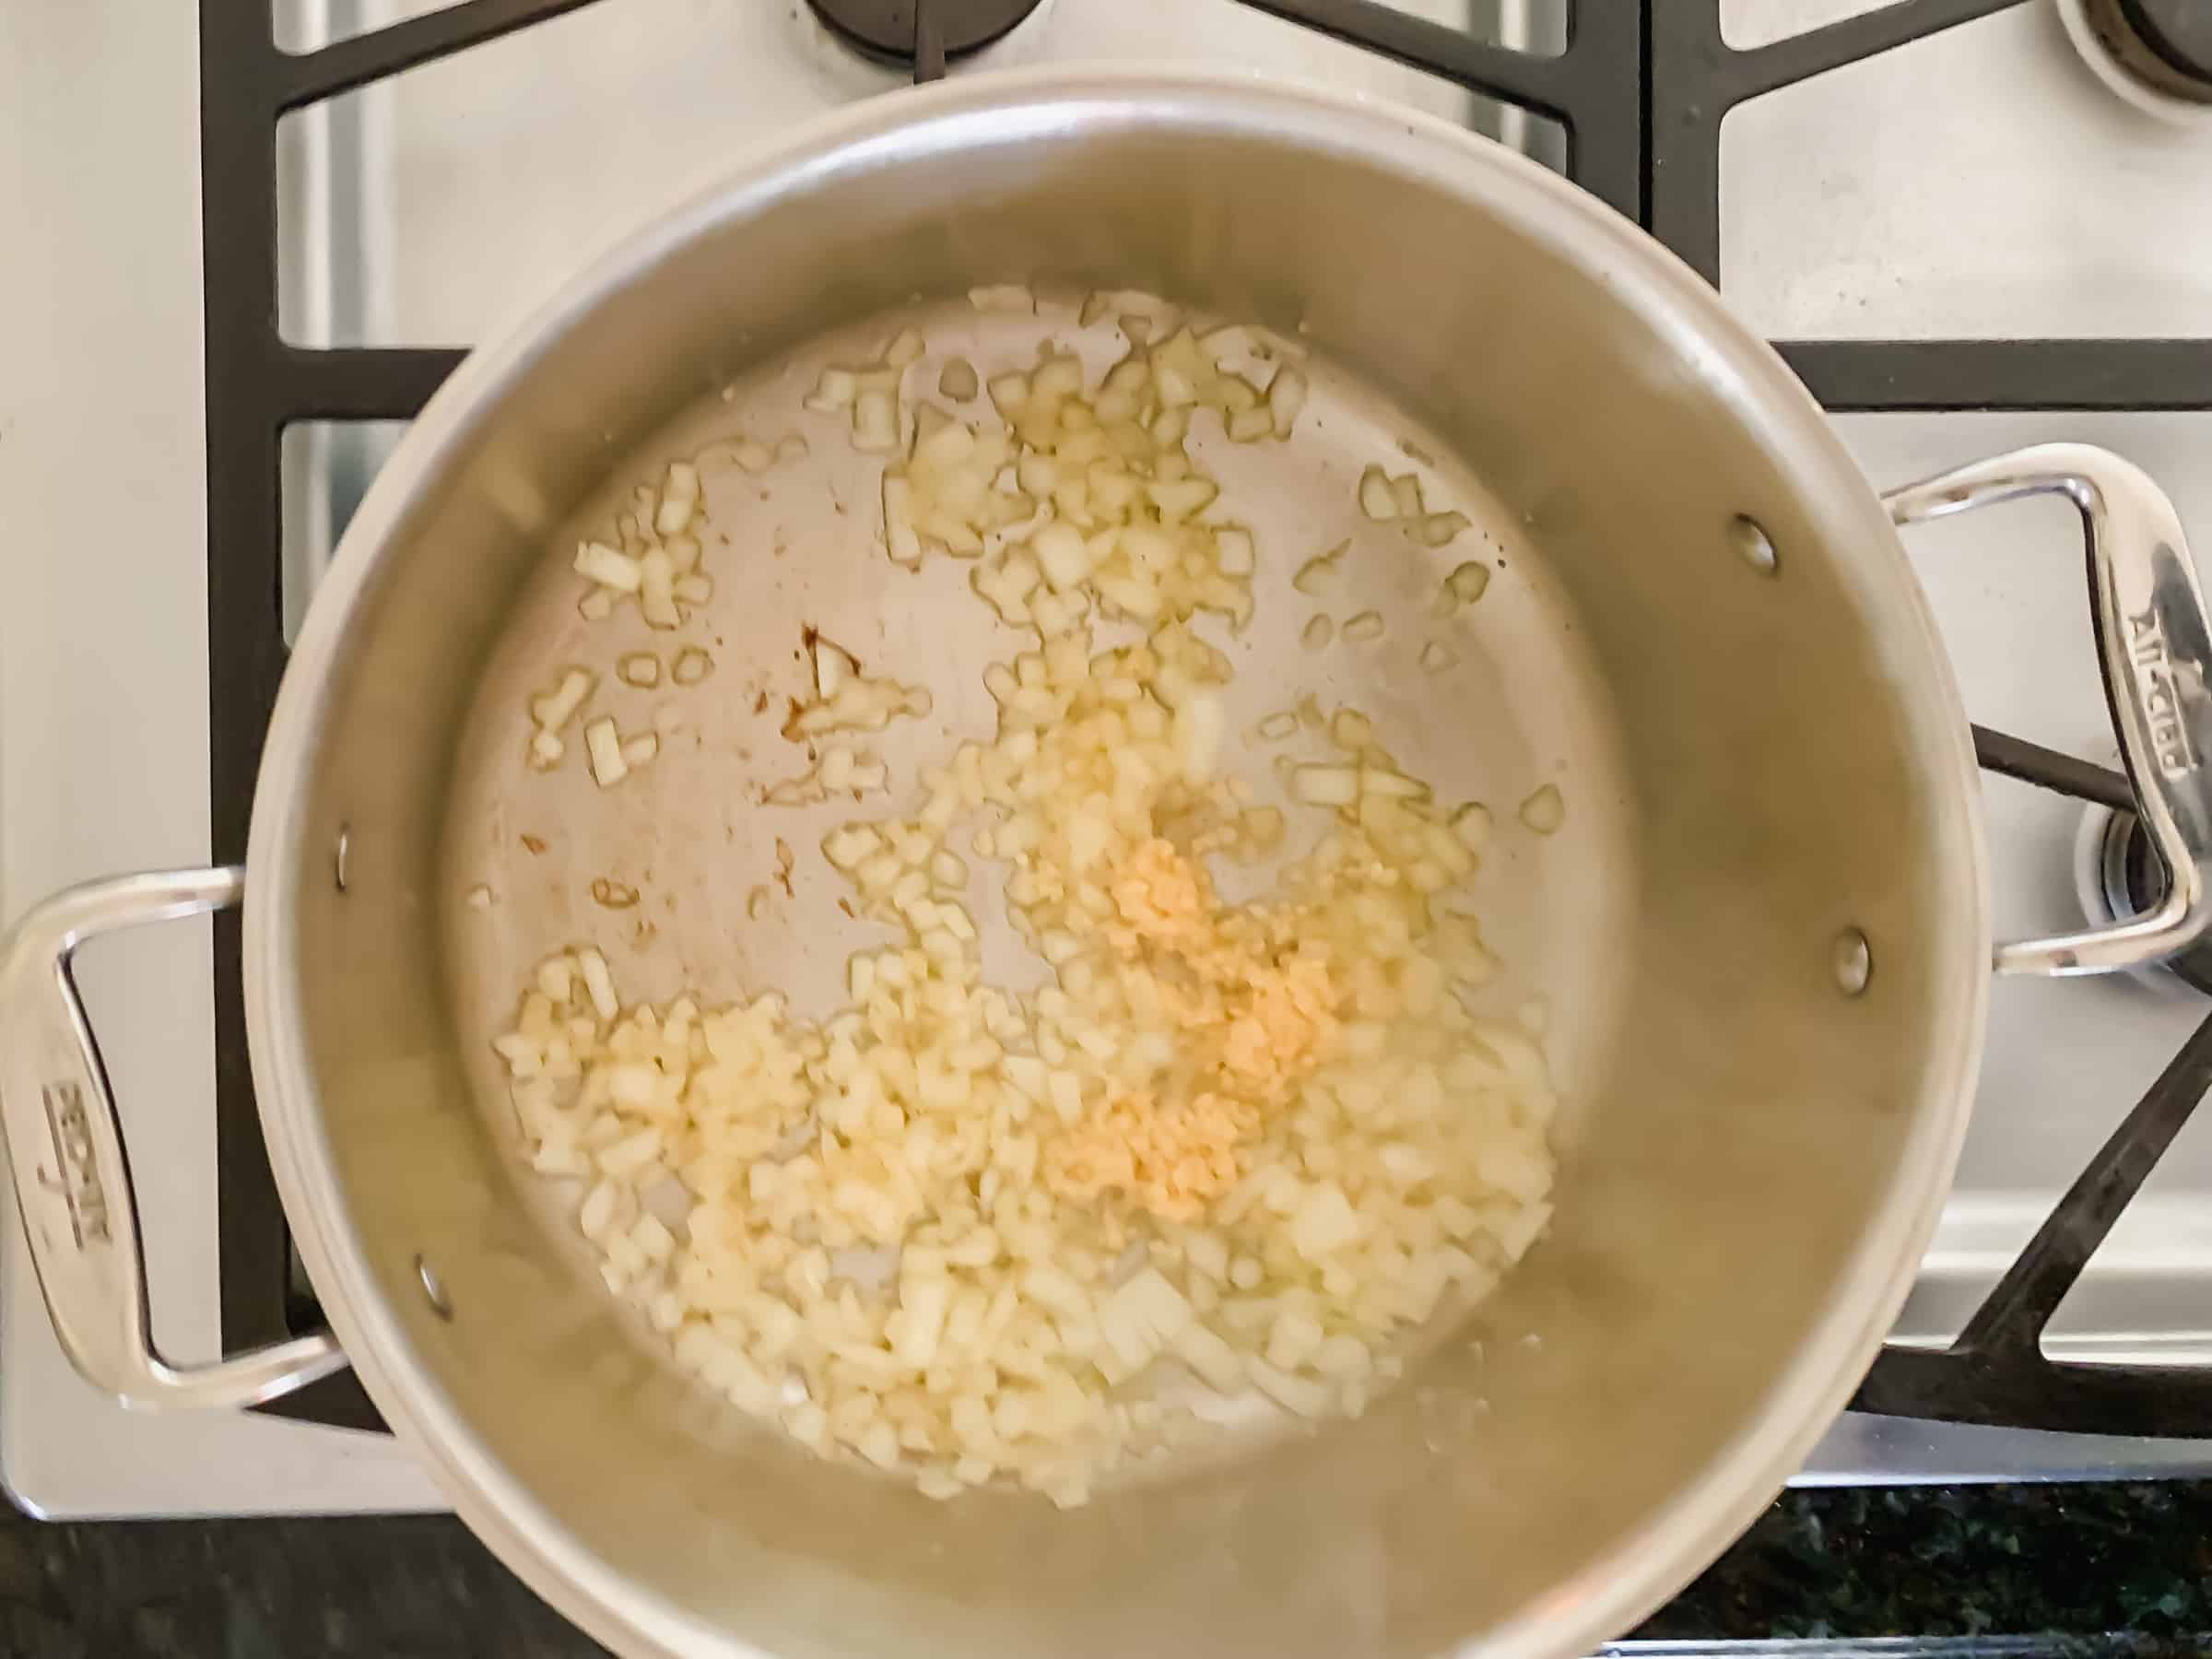 Sauteed onions and garlic in a pan